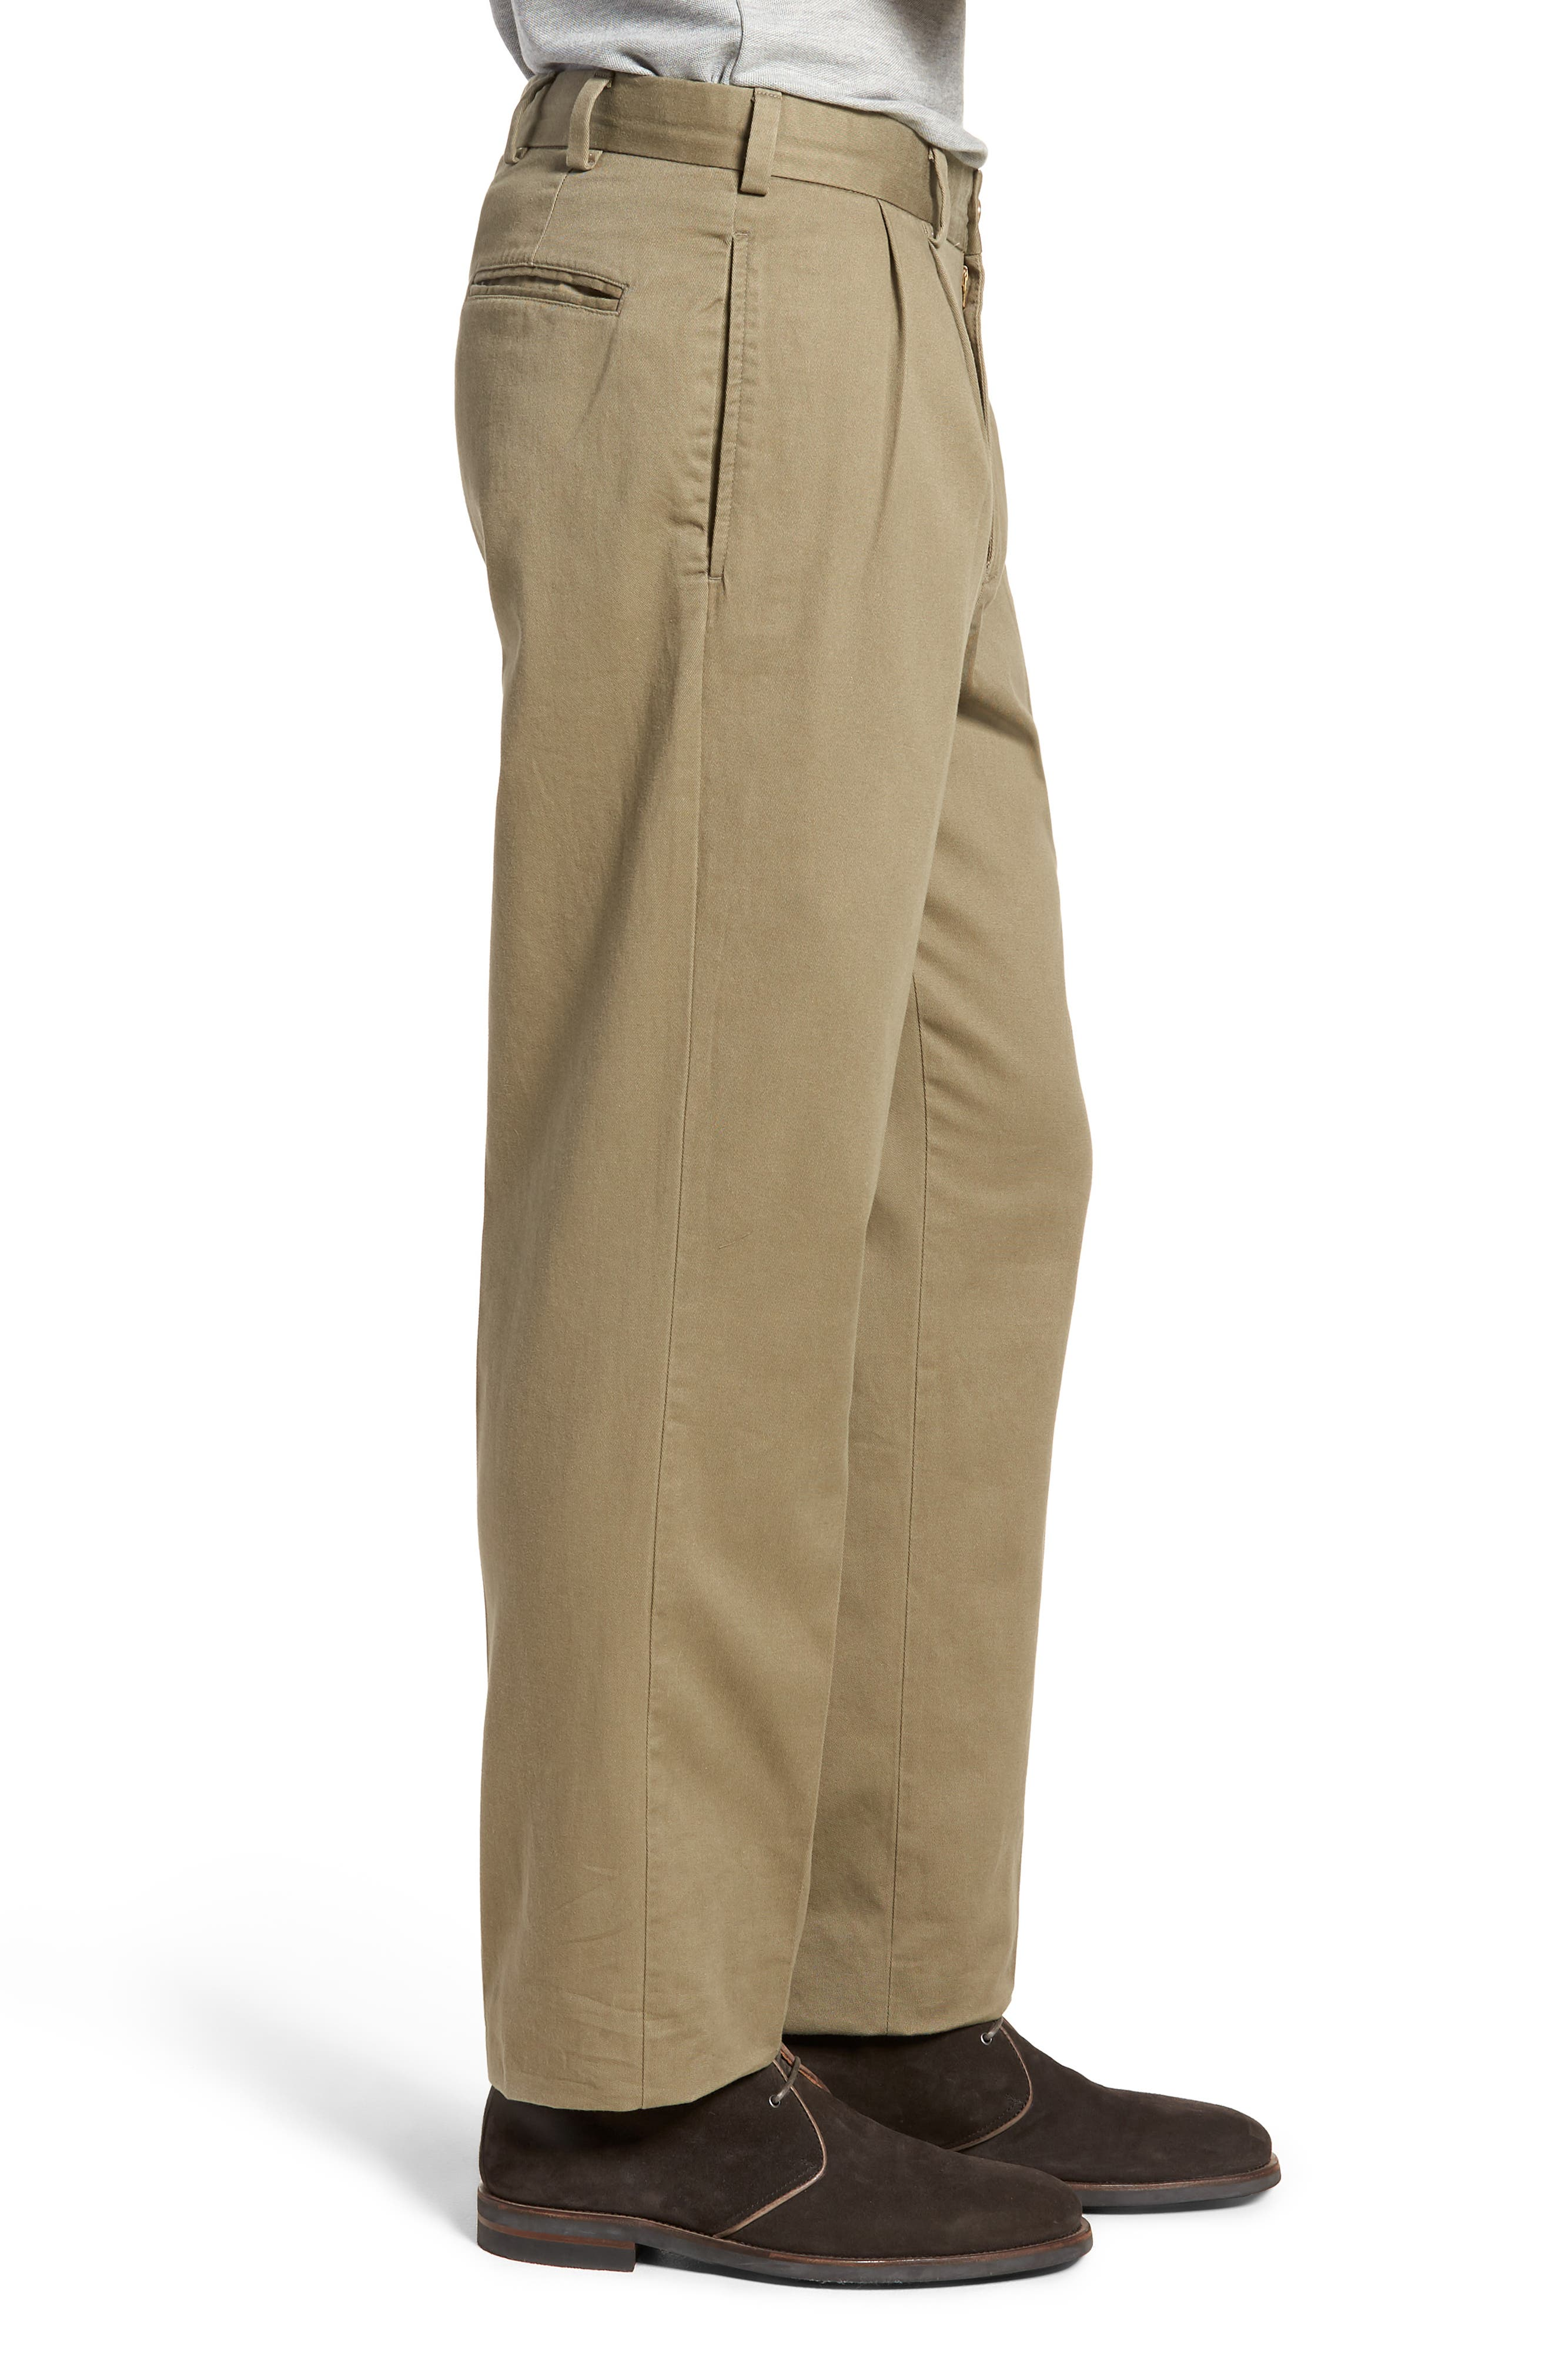 M2 Classic Fit Vintage Twill Pleated Pants,                             Alternate thumbnail 3, color,                             Olive